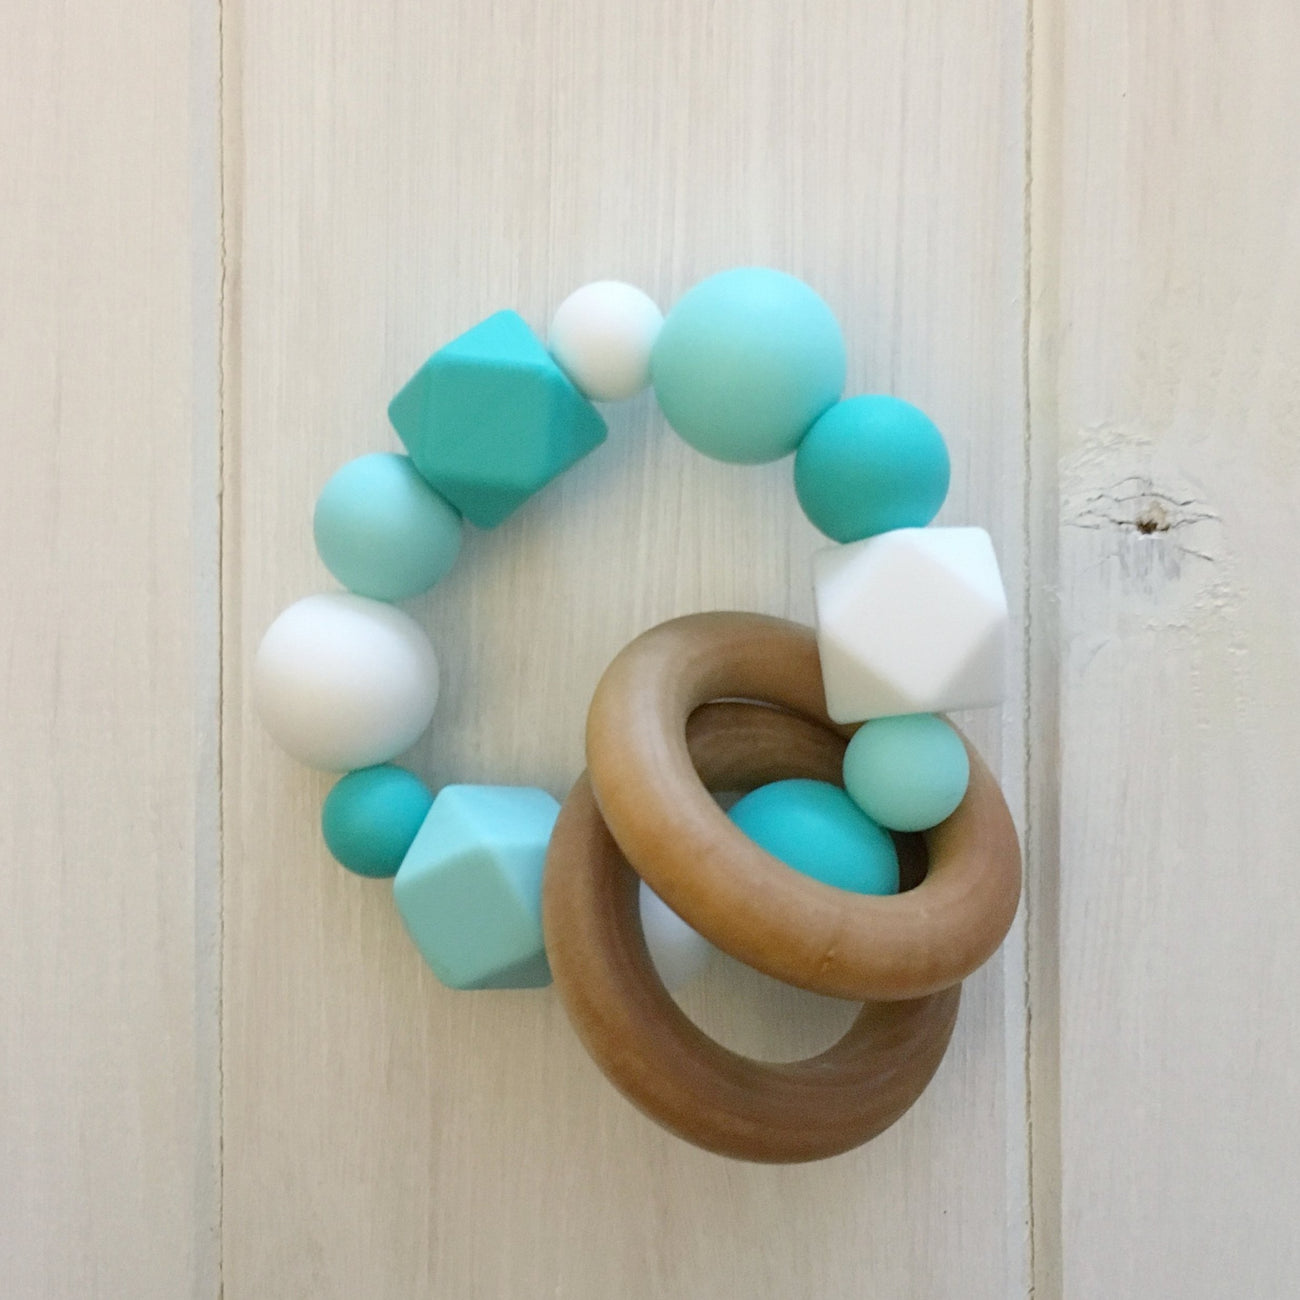 Ocean Blue Silicone Teething Rattle